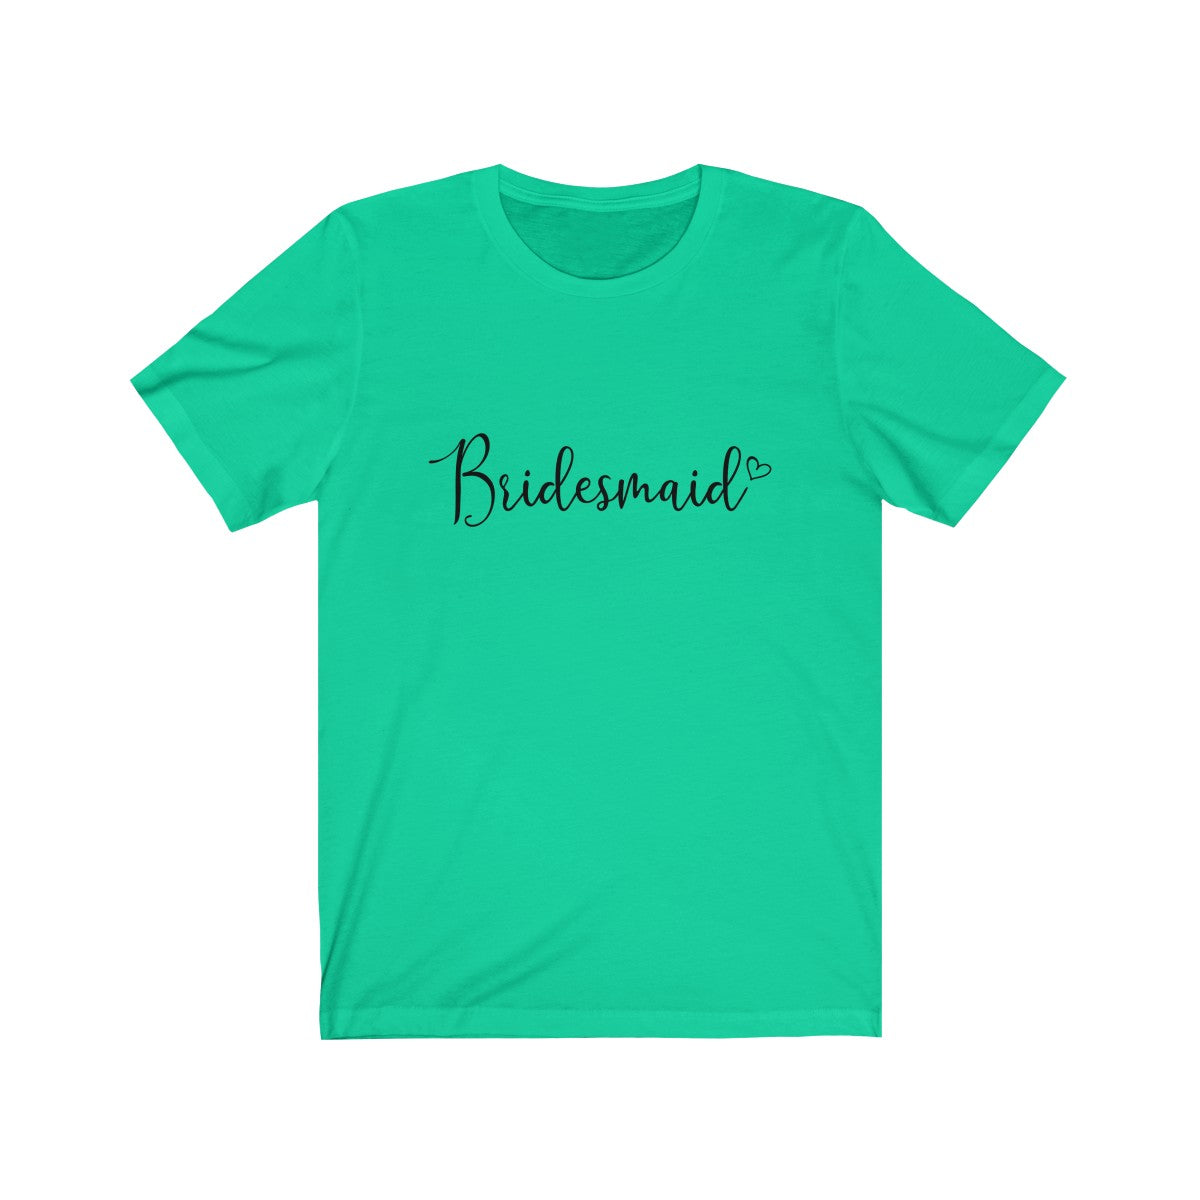 Tee Bridesmaid Heart white lettering - elrileygifts